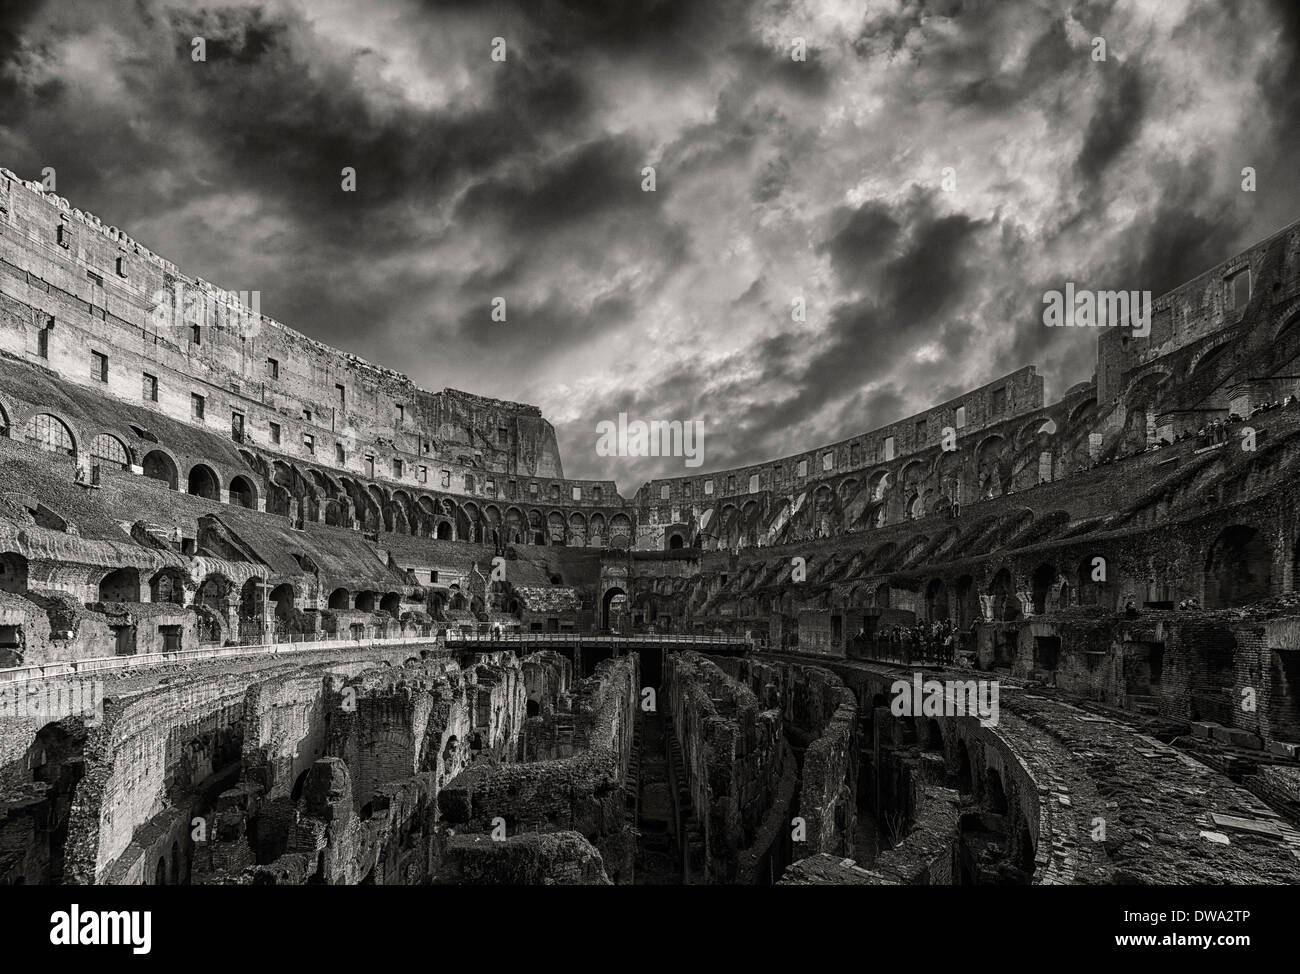 A monochromatic view of the impressive ancient roman colosseum situated in the Italien capital of Rome. - Stock Image